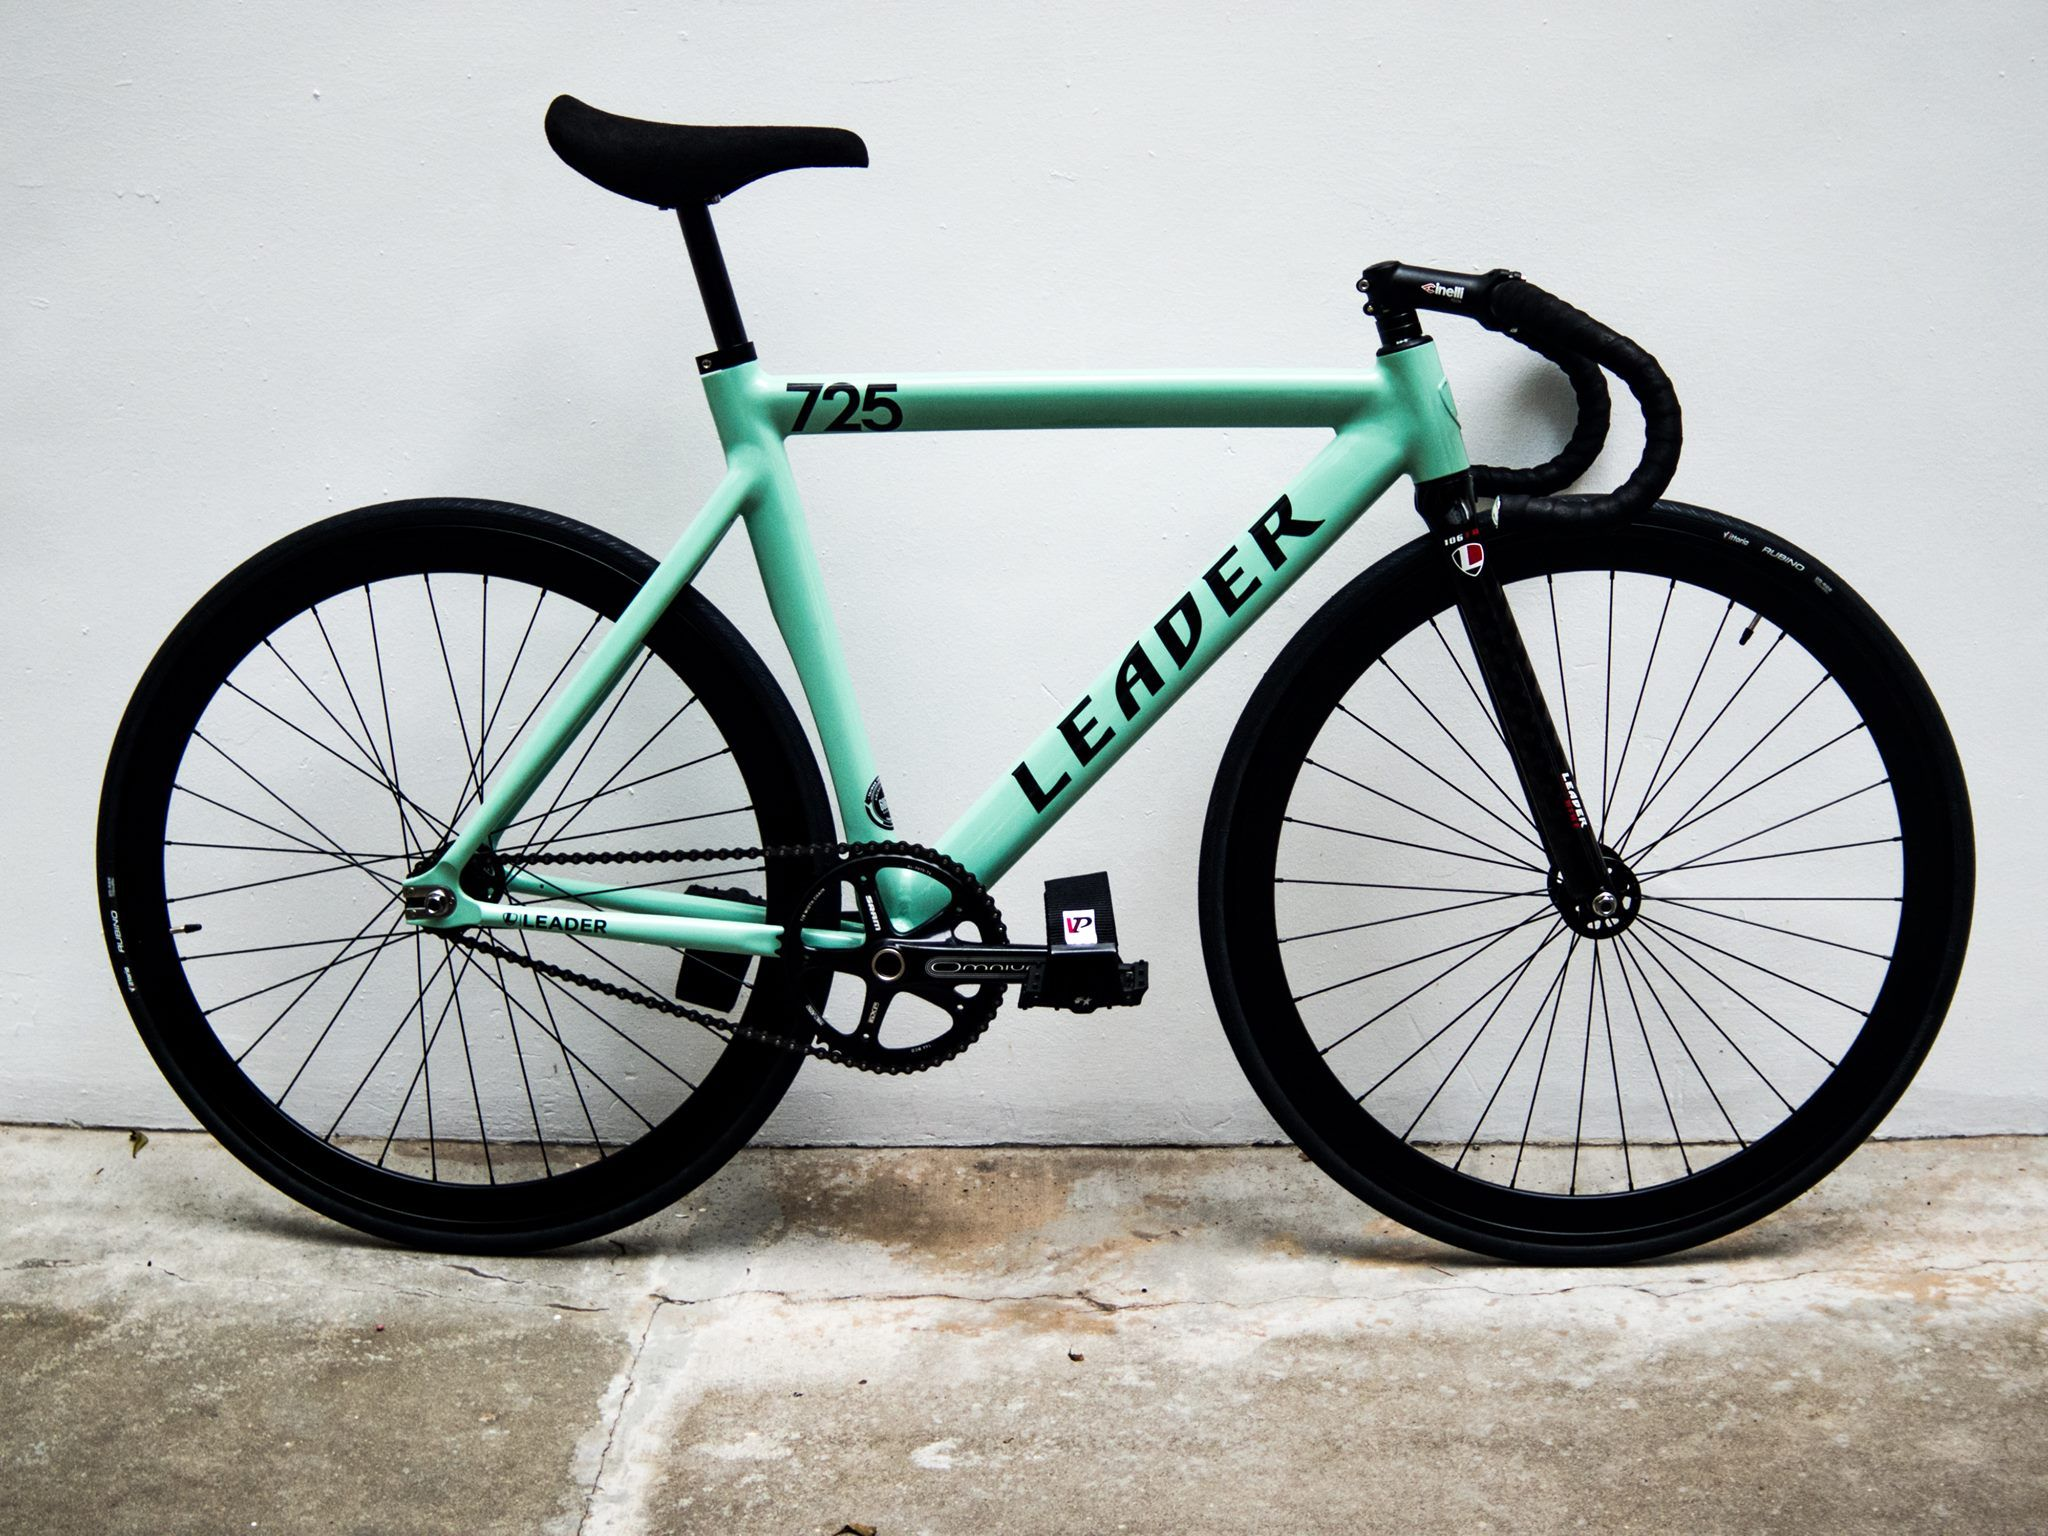 Leader 725 Complete Fixed Gear Bike Fixed Pinterest Fixie